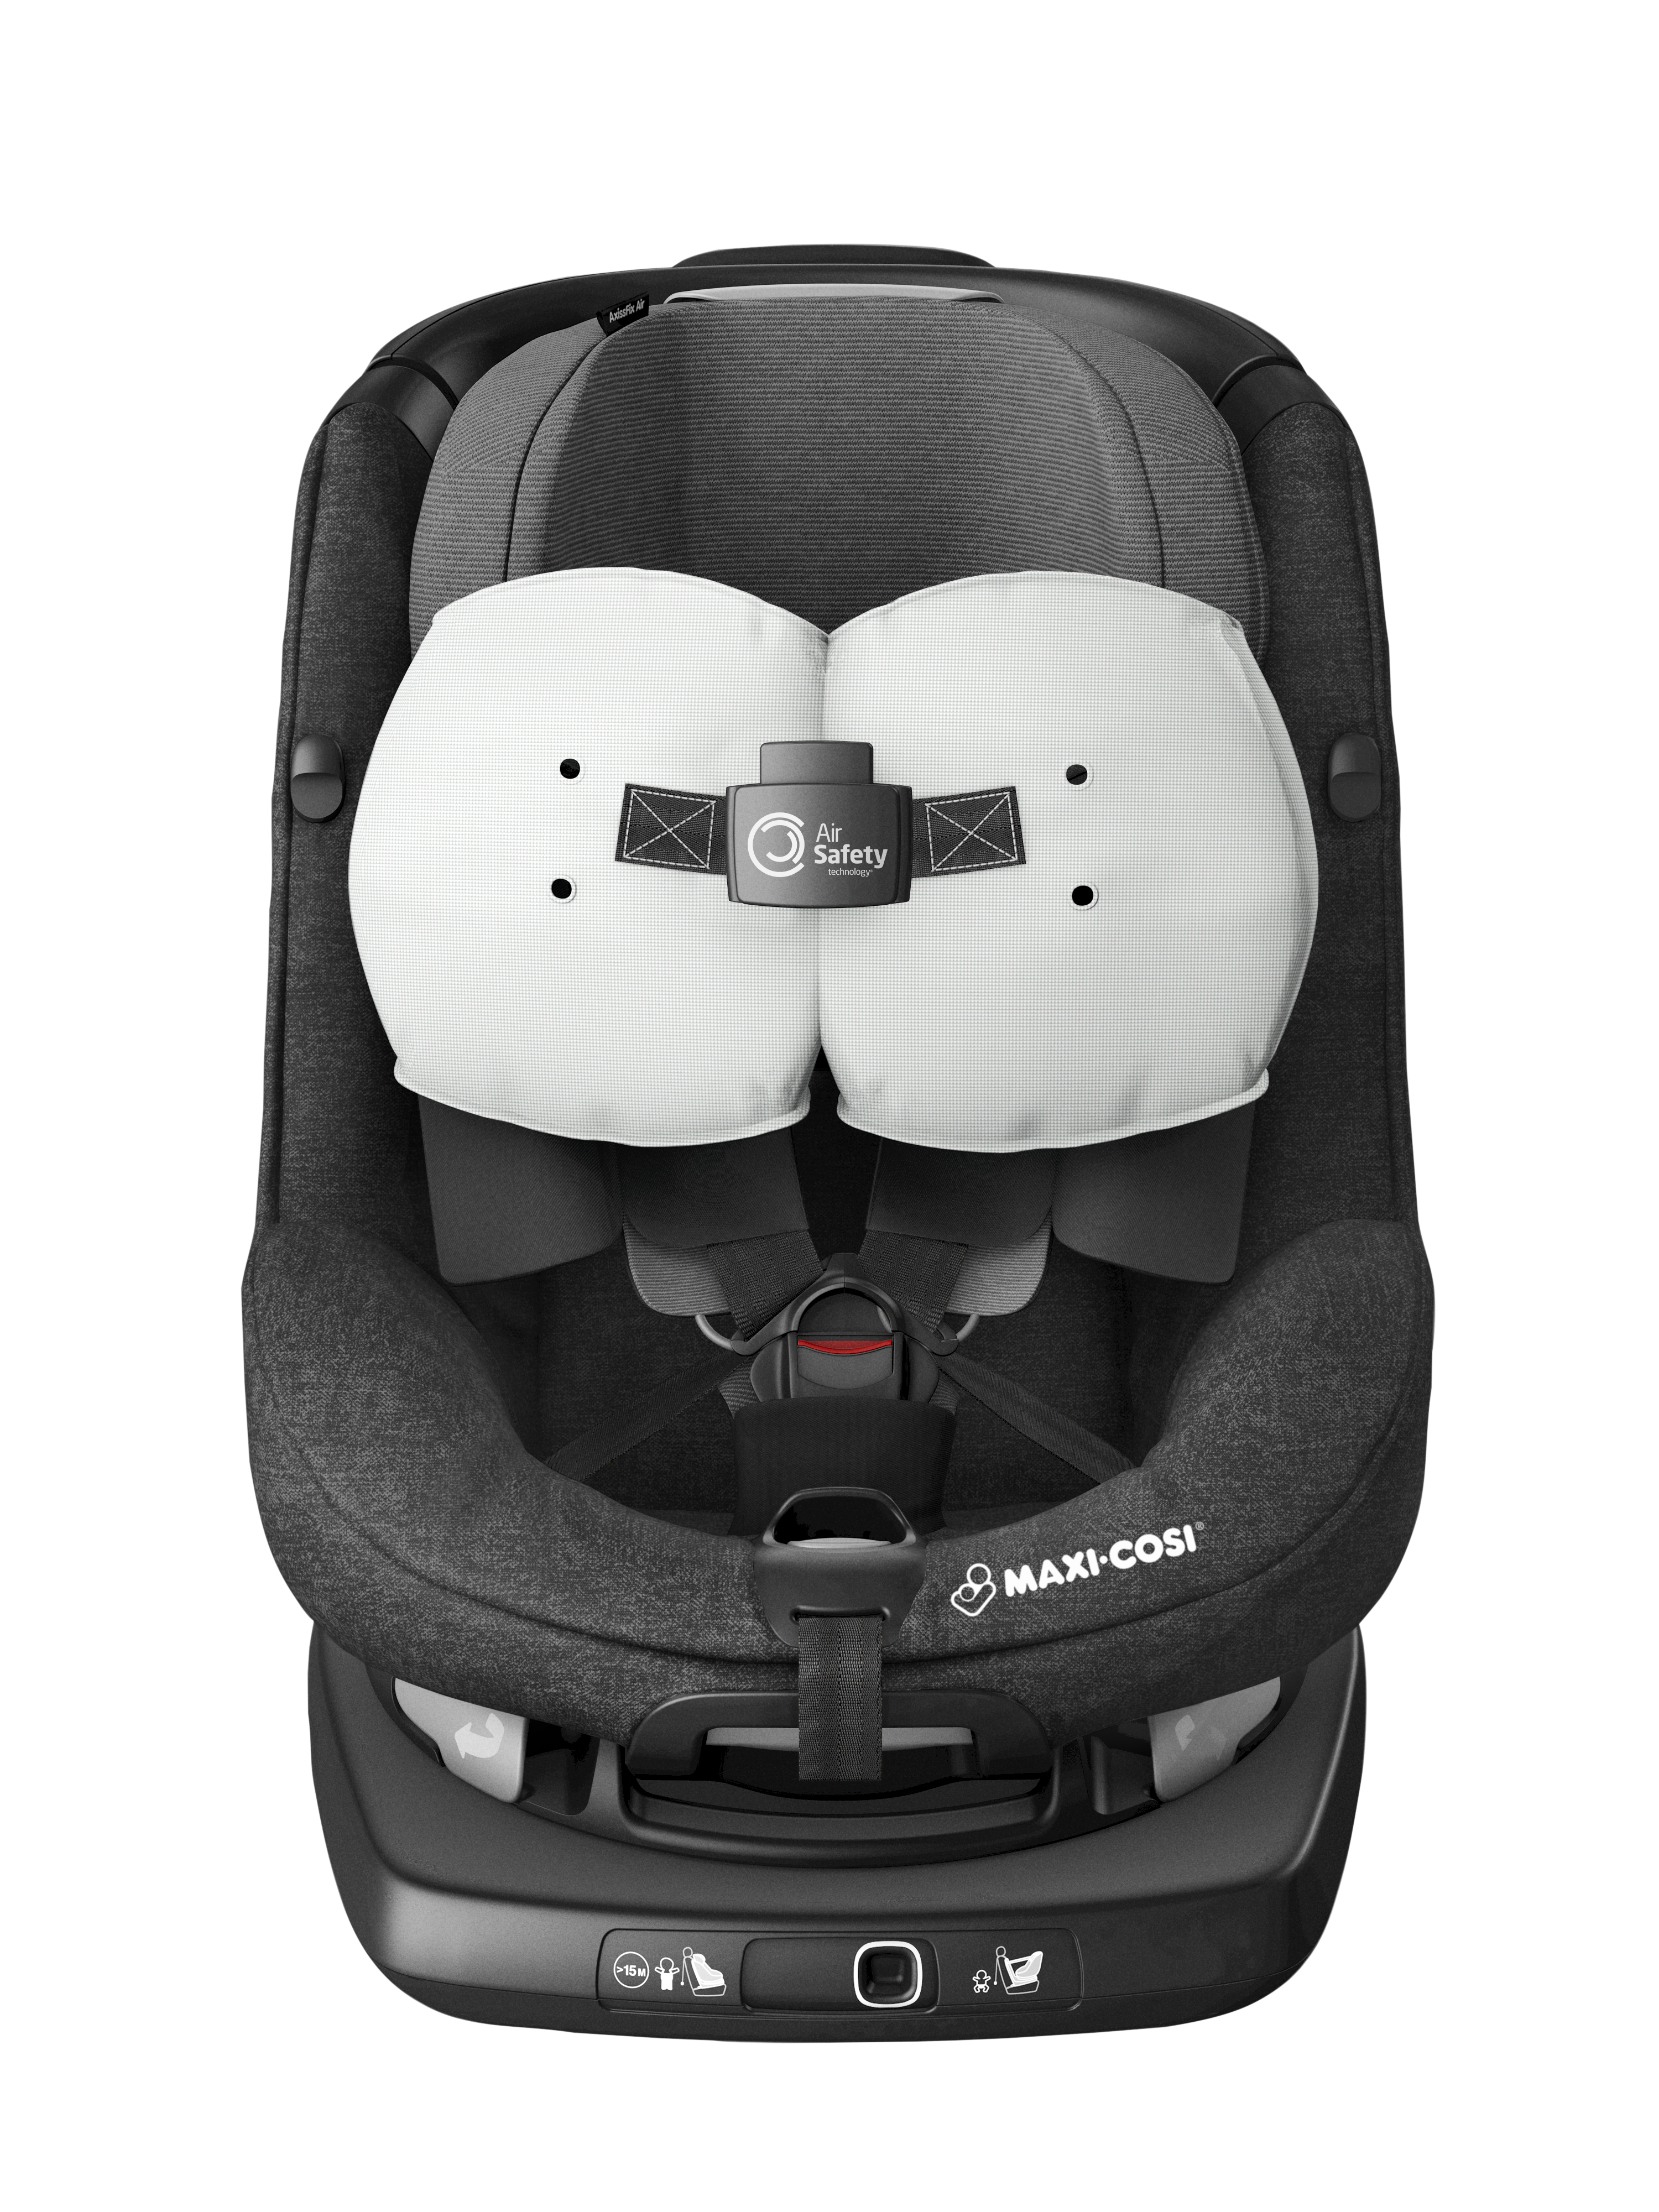 Maxi Cosi Launches First Child Car Seat With Airbags Which News